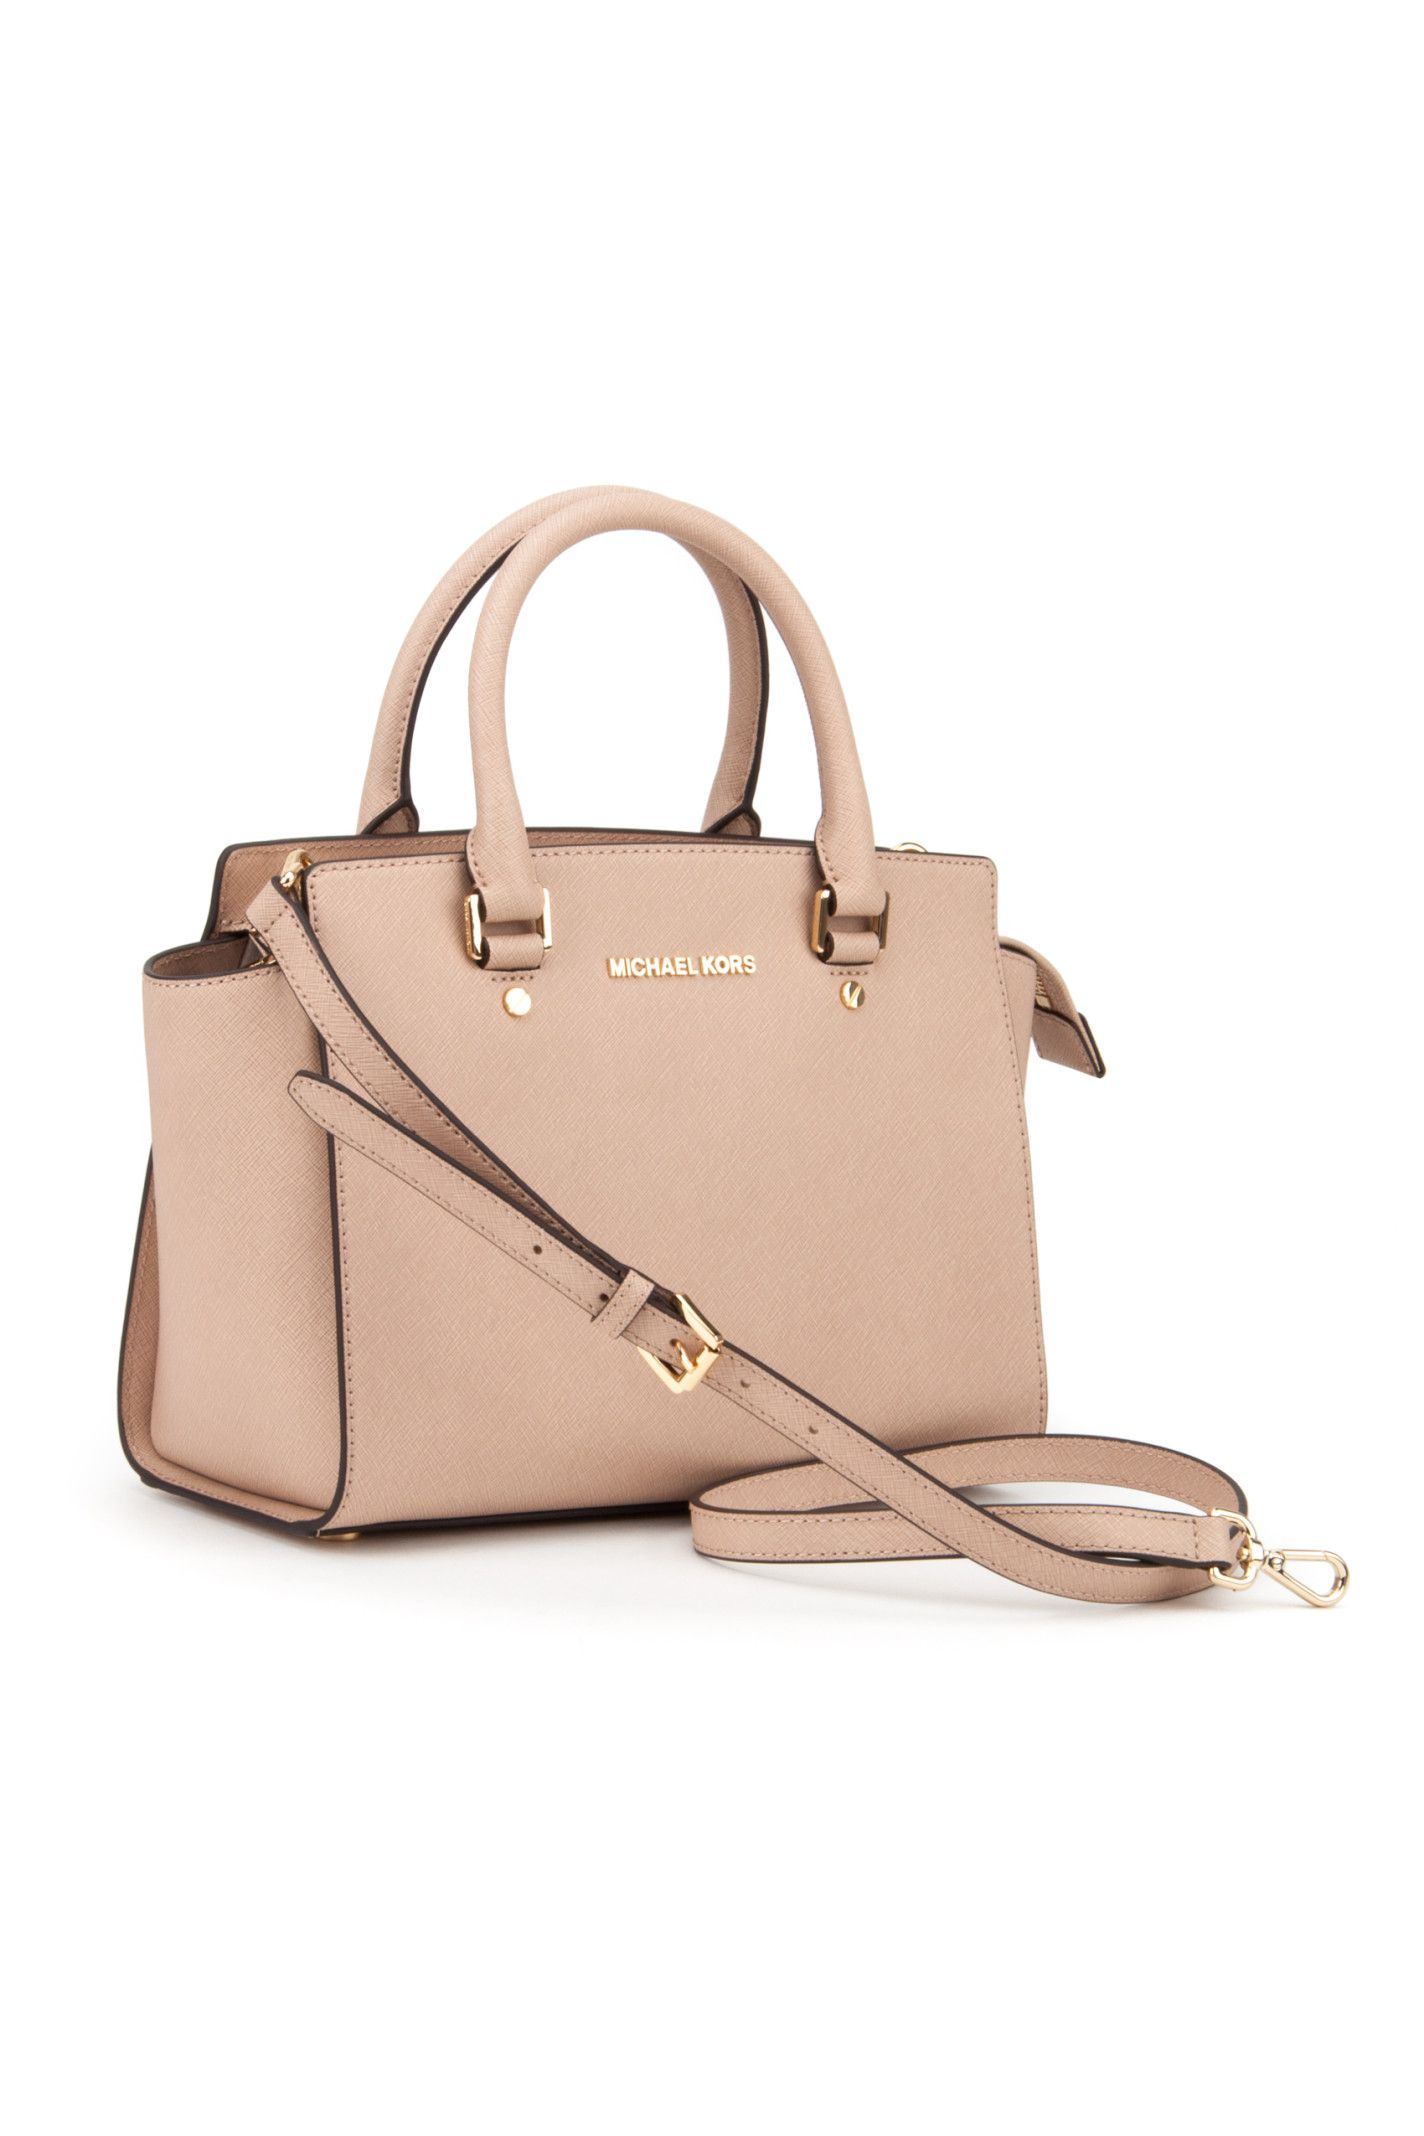 249195645698 michael kors on | Lol surprise dolls | Michael kors bag, Handbags ...